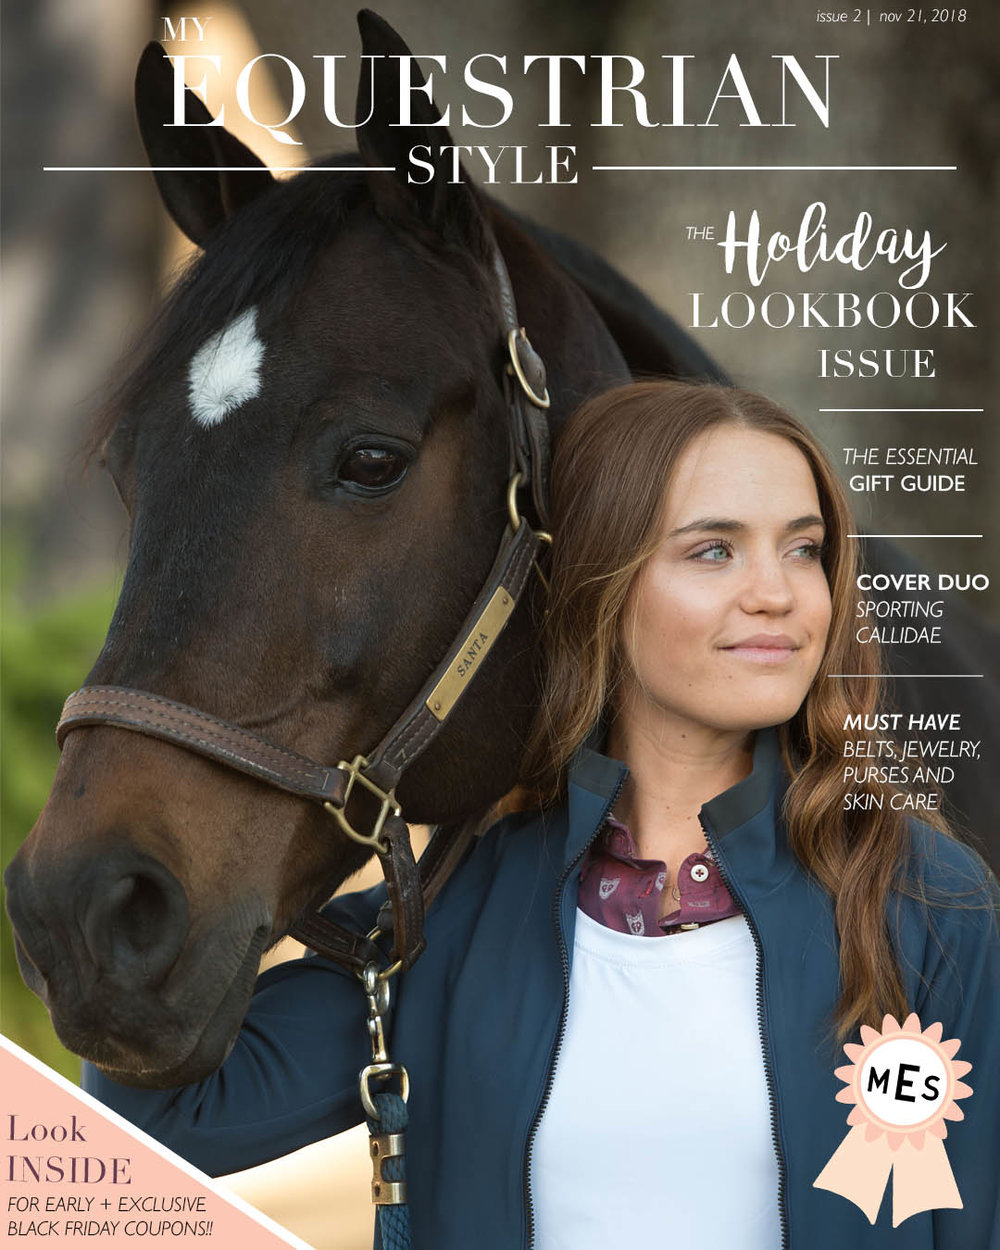 My Equestrian Style - The Holiday Lookbook Issue@myequestrianstyle